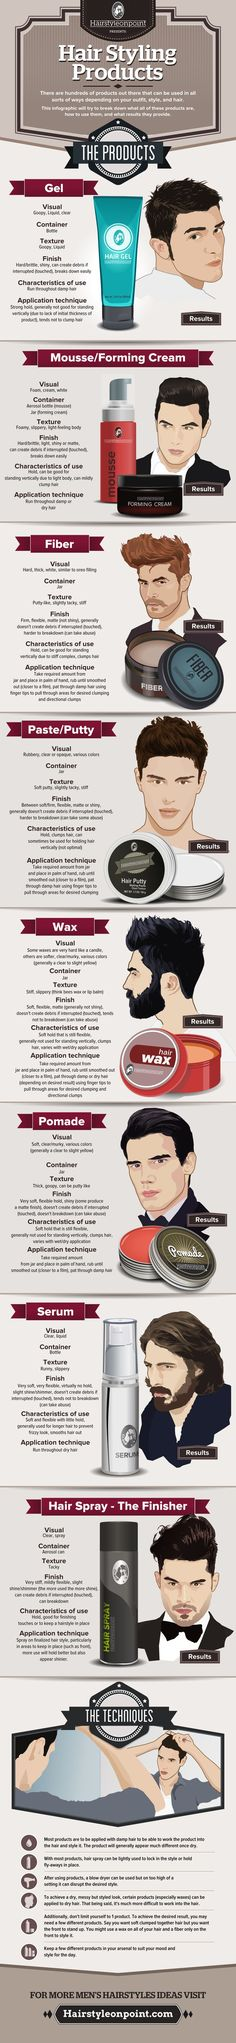 Hair Styling Products_150ppp  #Style #Fashion #Menswear Re-pinned by www.avacationrental4me.com